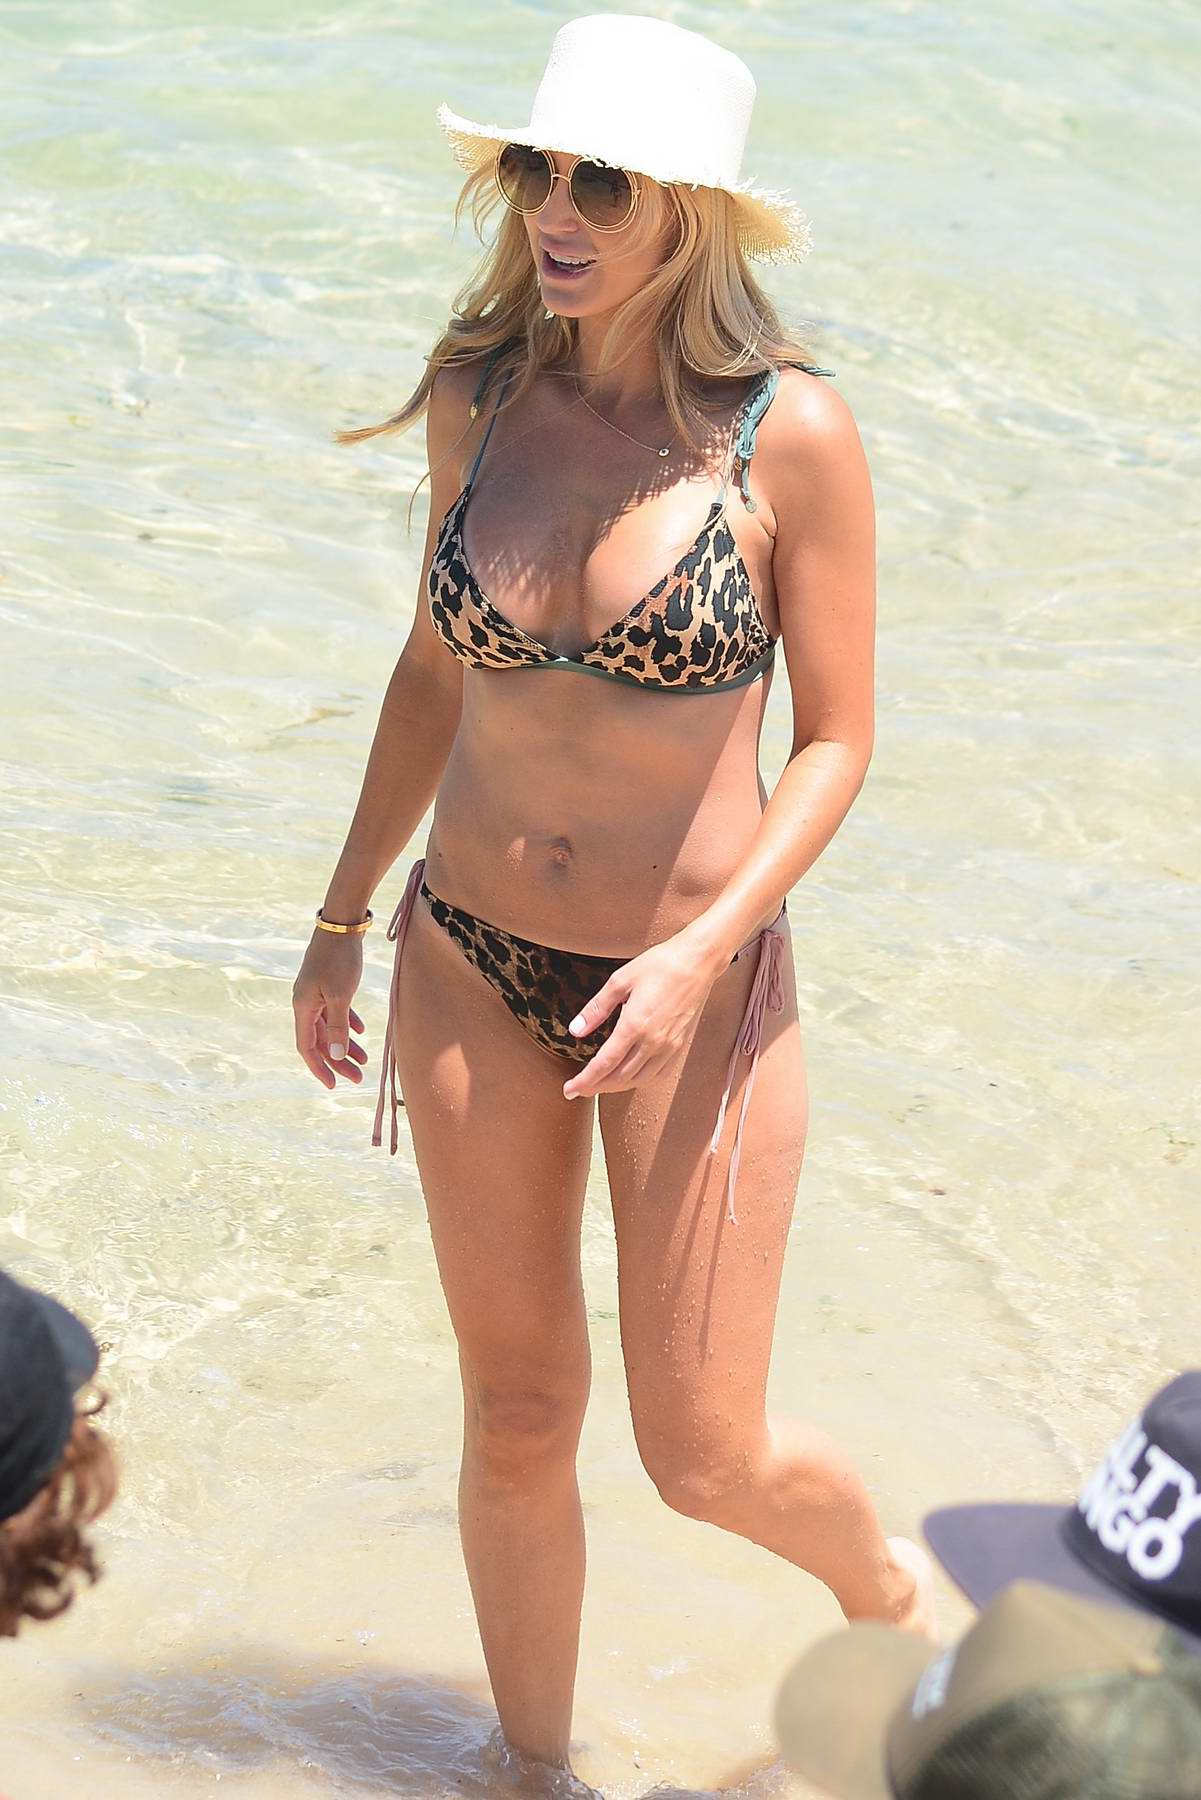 Roxy Jacenko in a leopard print bikini enjoys a day with her family at Bondi beach in Sydney, Australia